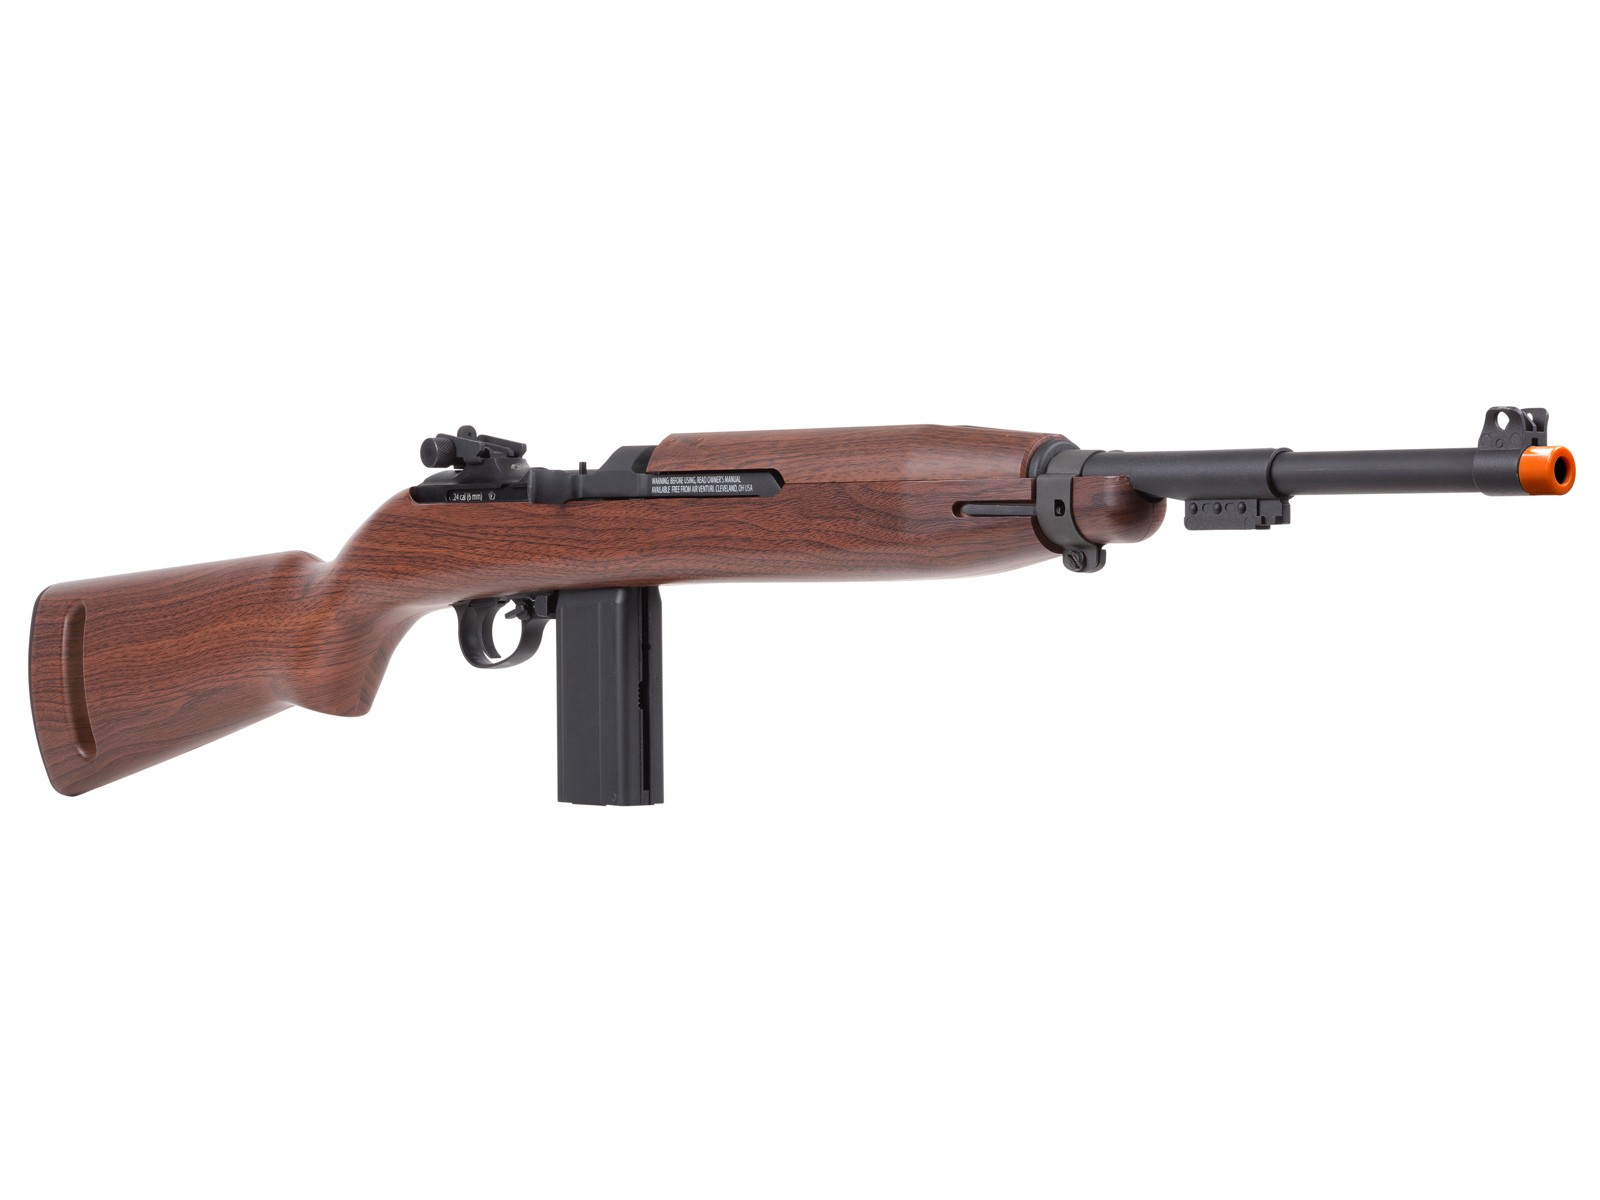 Springfield_Armory_M1_Carbine_CO2_Blowback_Airsoft_Rifle_6mm